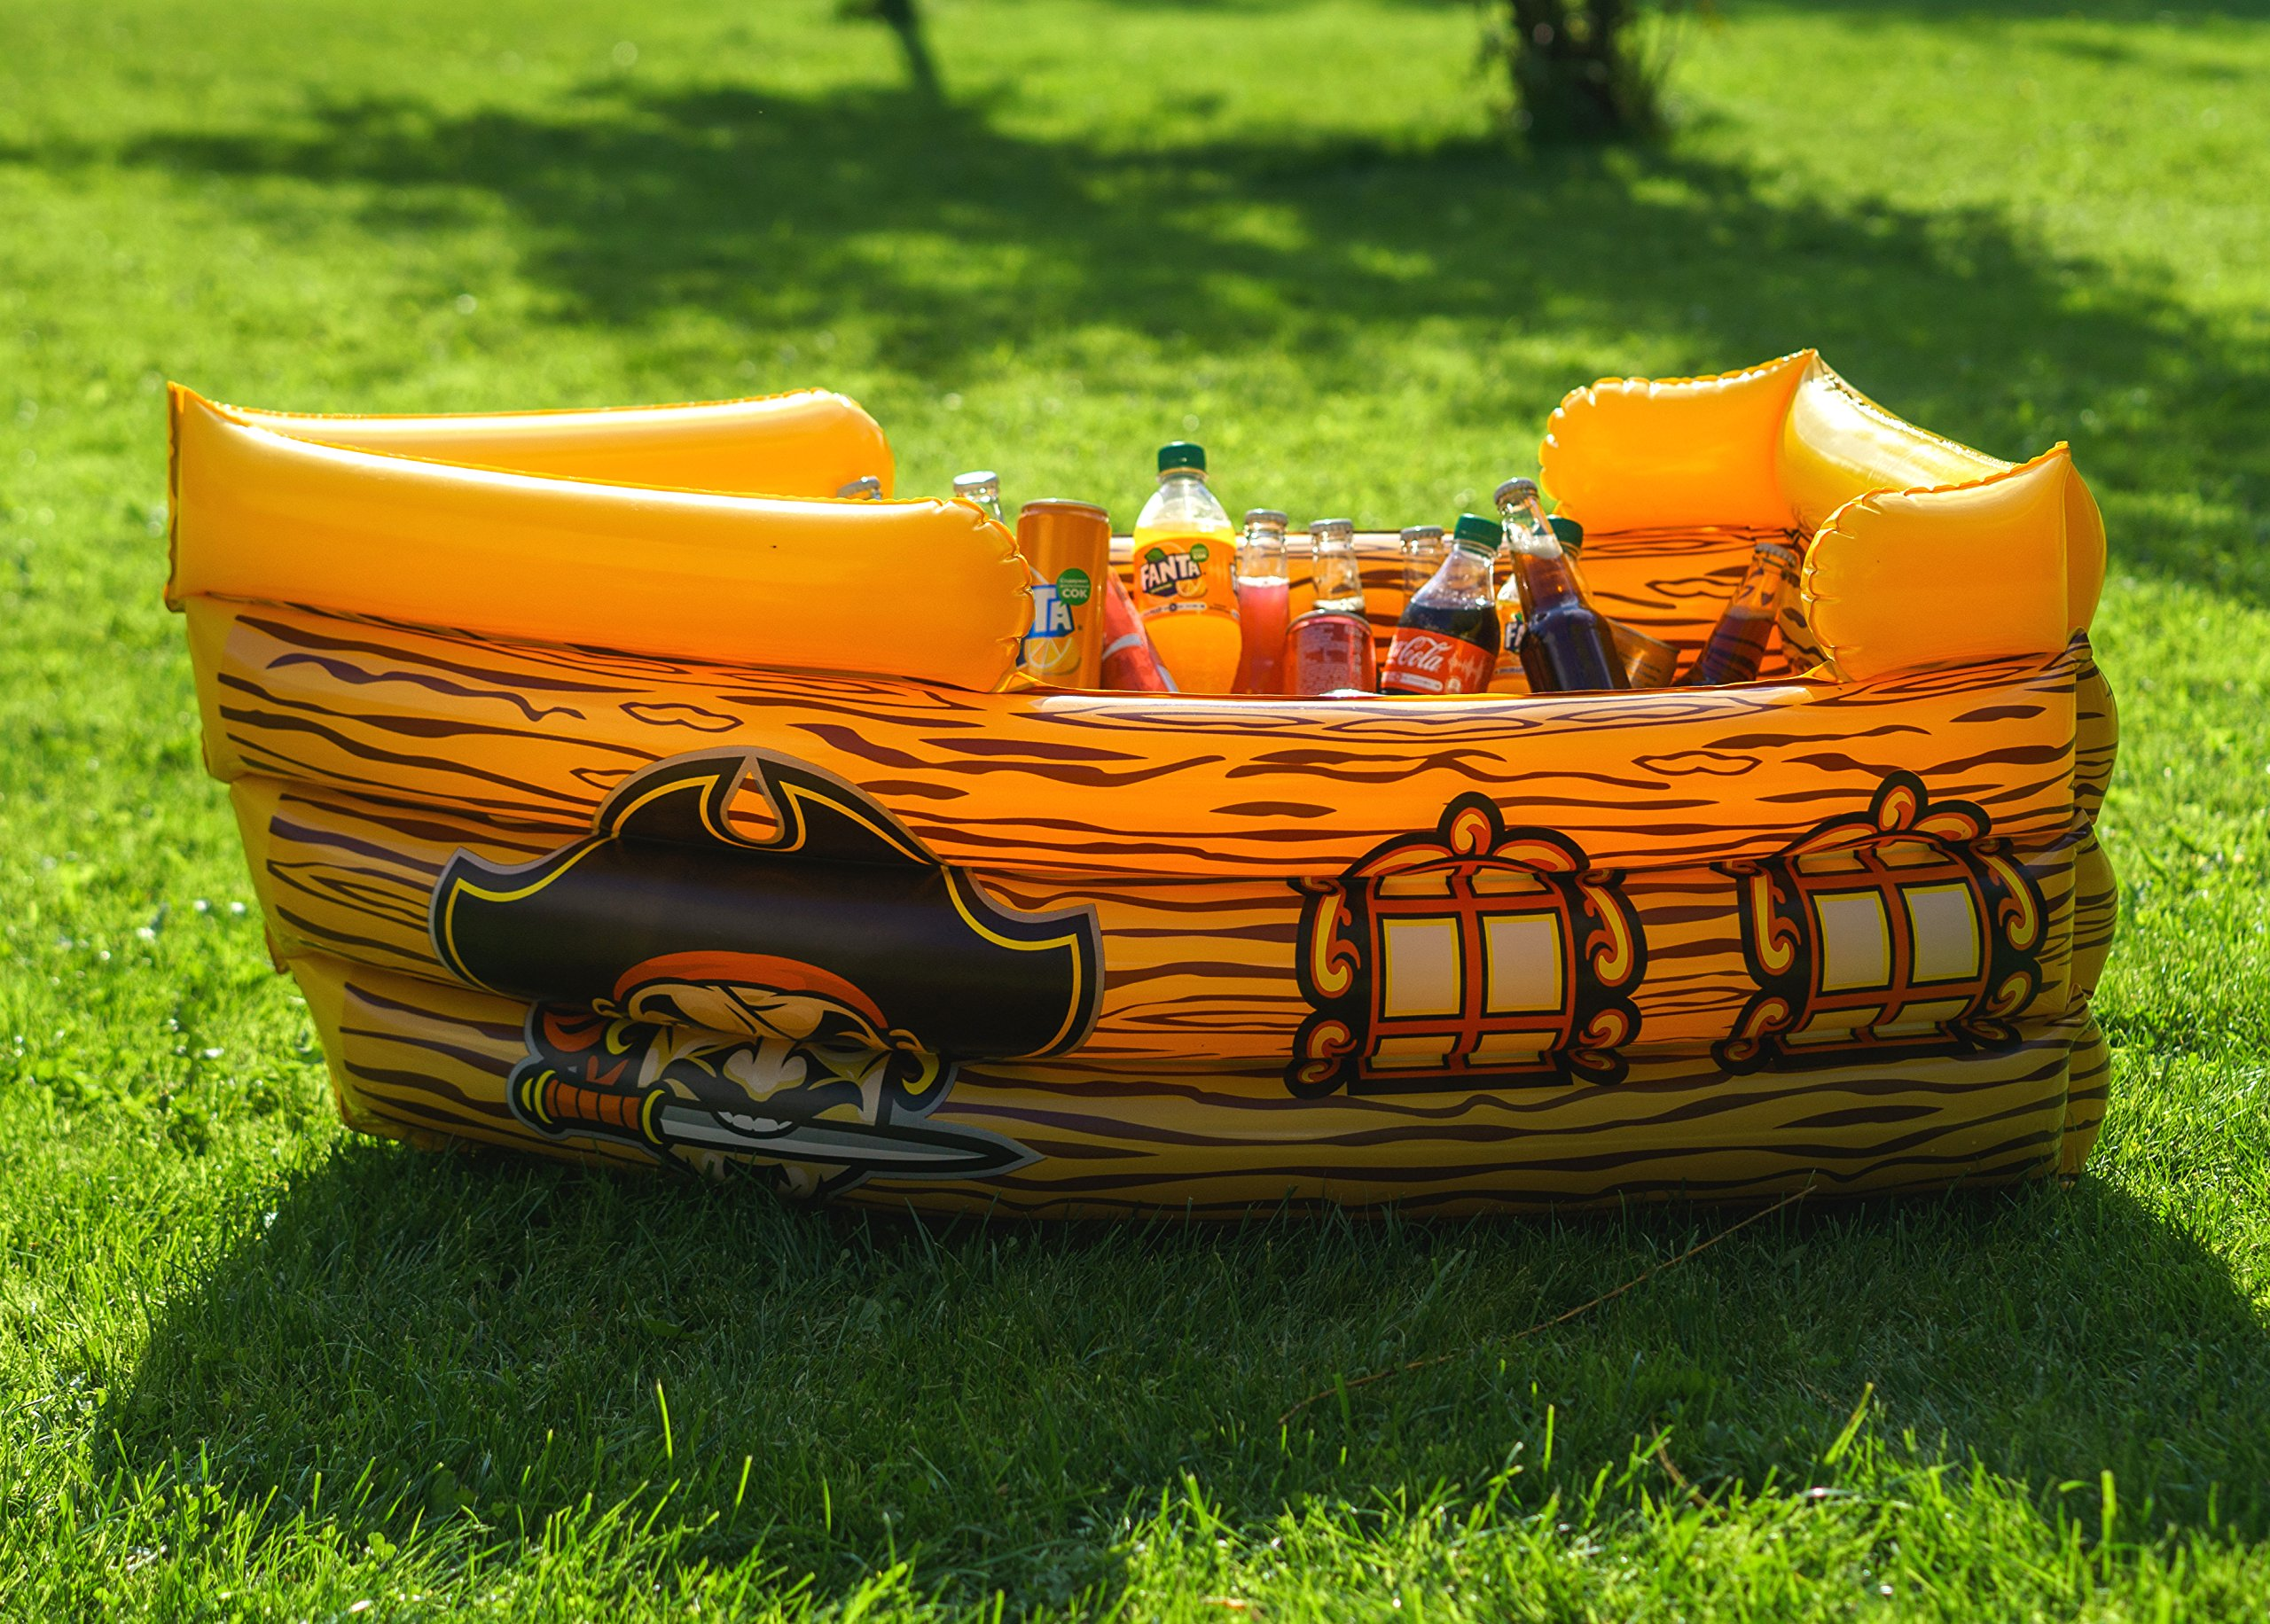 Kenley Inflatable Drinks Cooler - Floating Pirate Ship - Supplies & Decorations for Beach Pool Party, Summer Picnic, BBQ, Luau or Pirate Theme Kids Birthday - Ice Buffet Tray Drink Holder Serving Bar